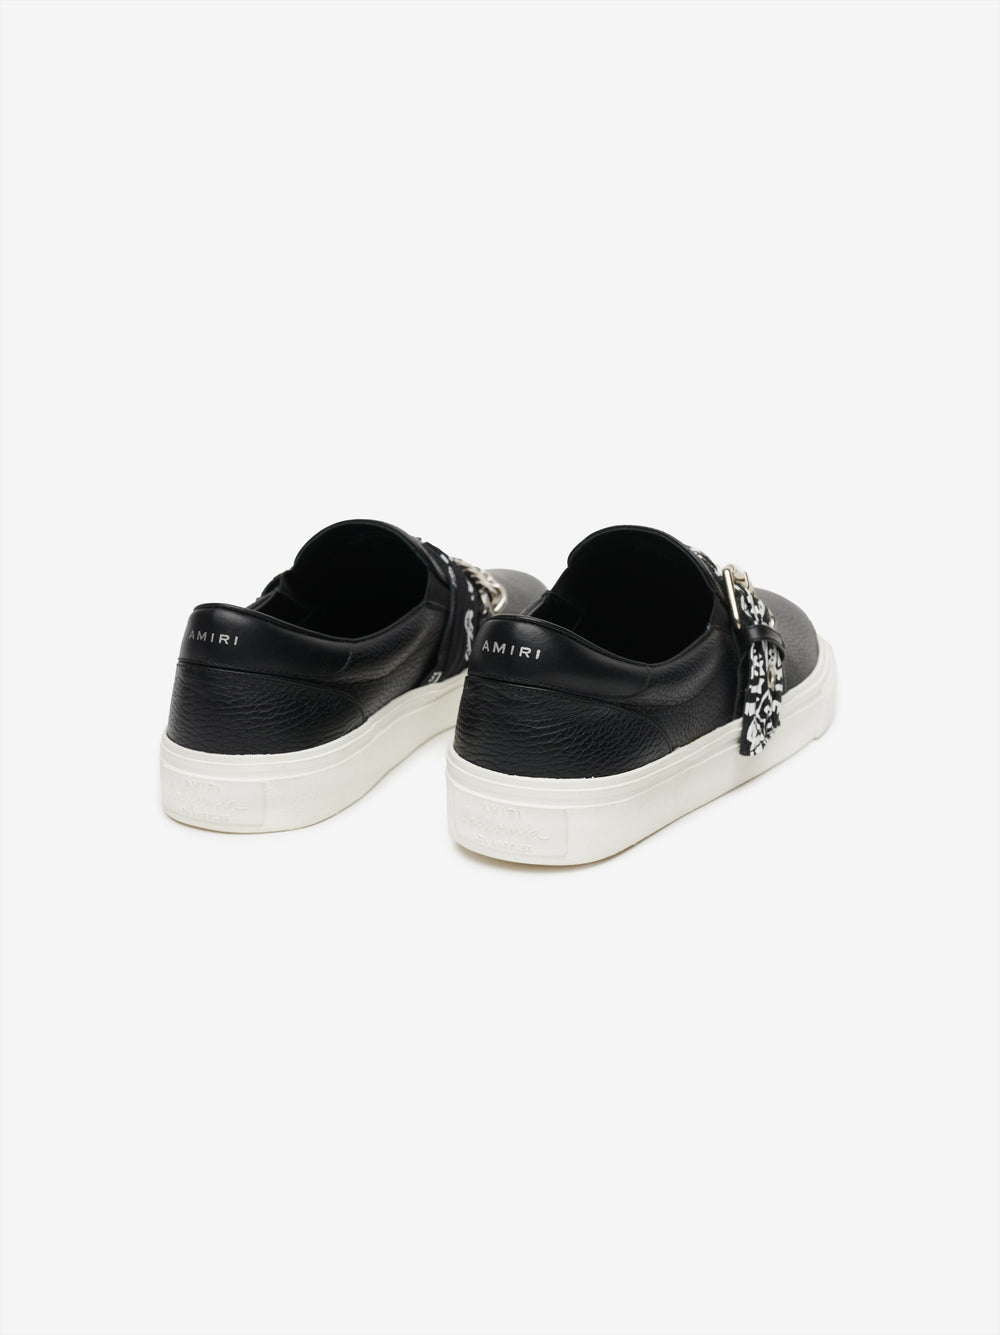 BANDANA CHAIN SLIP ON - BLACK / BLACK